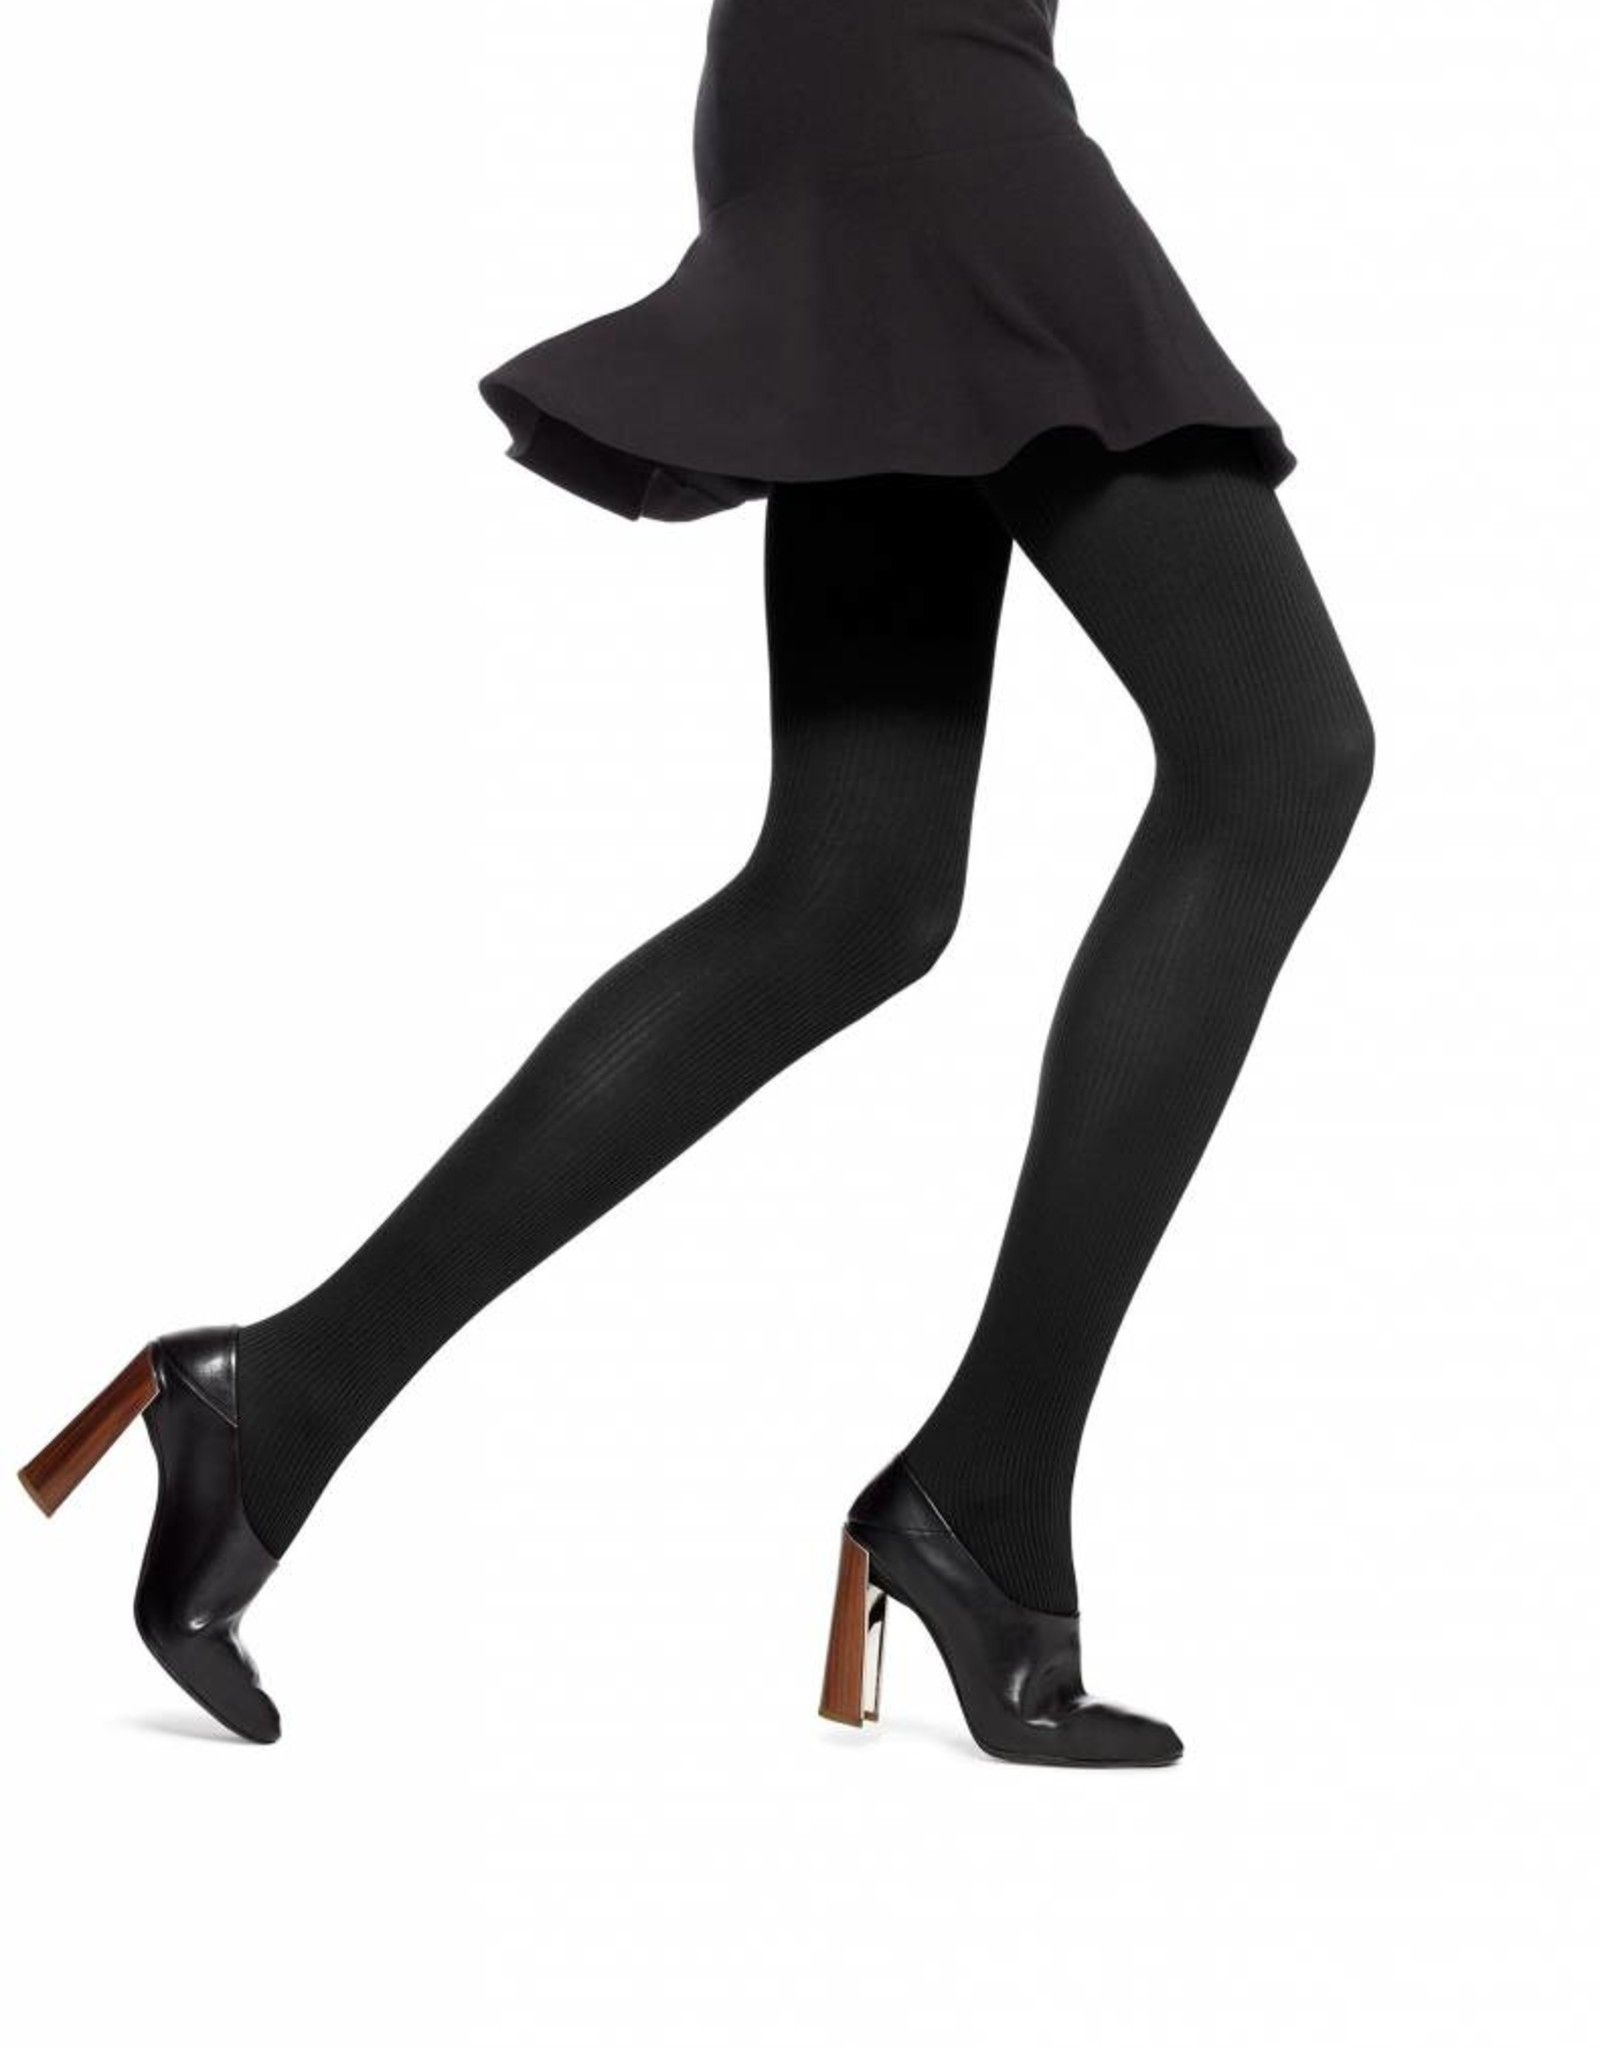 Hue Hue Classic Rib Control Top Tights